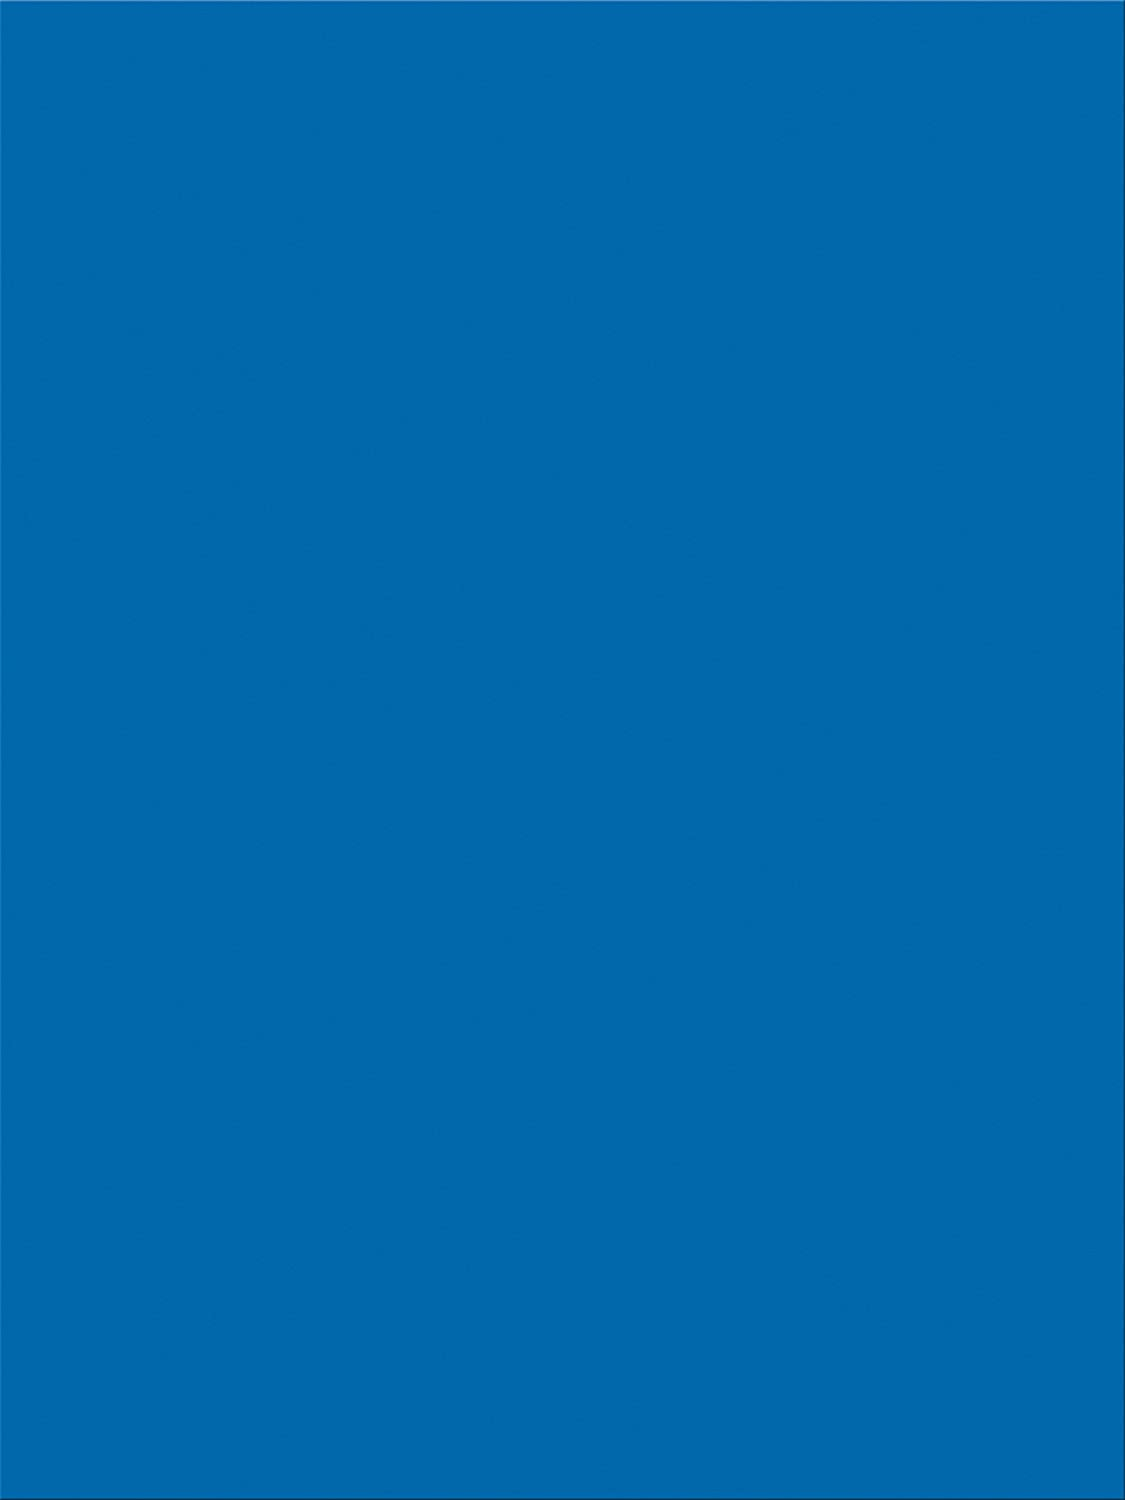 Pacon SunWorks Construction Paper, 9 x 12, 100-Count, Bright Blue (7504) 9 x 12 Pacon Corp.